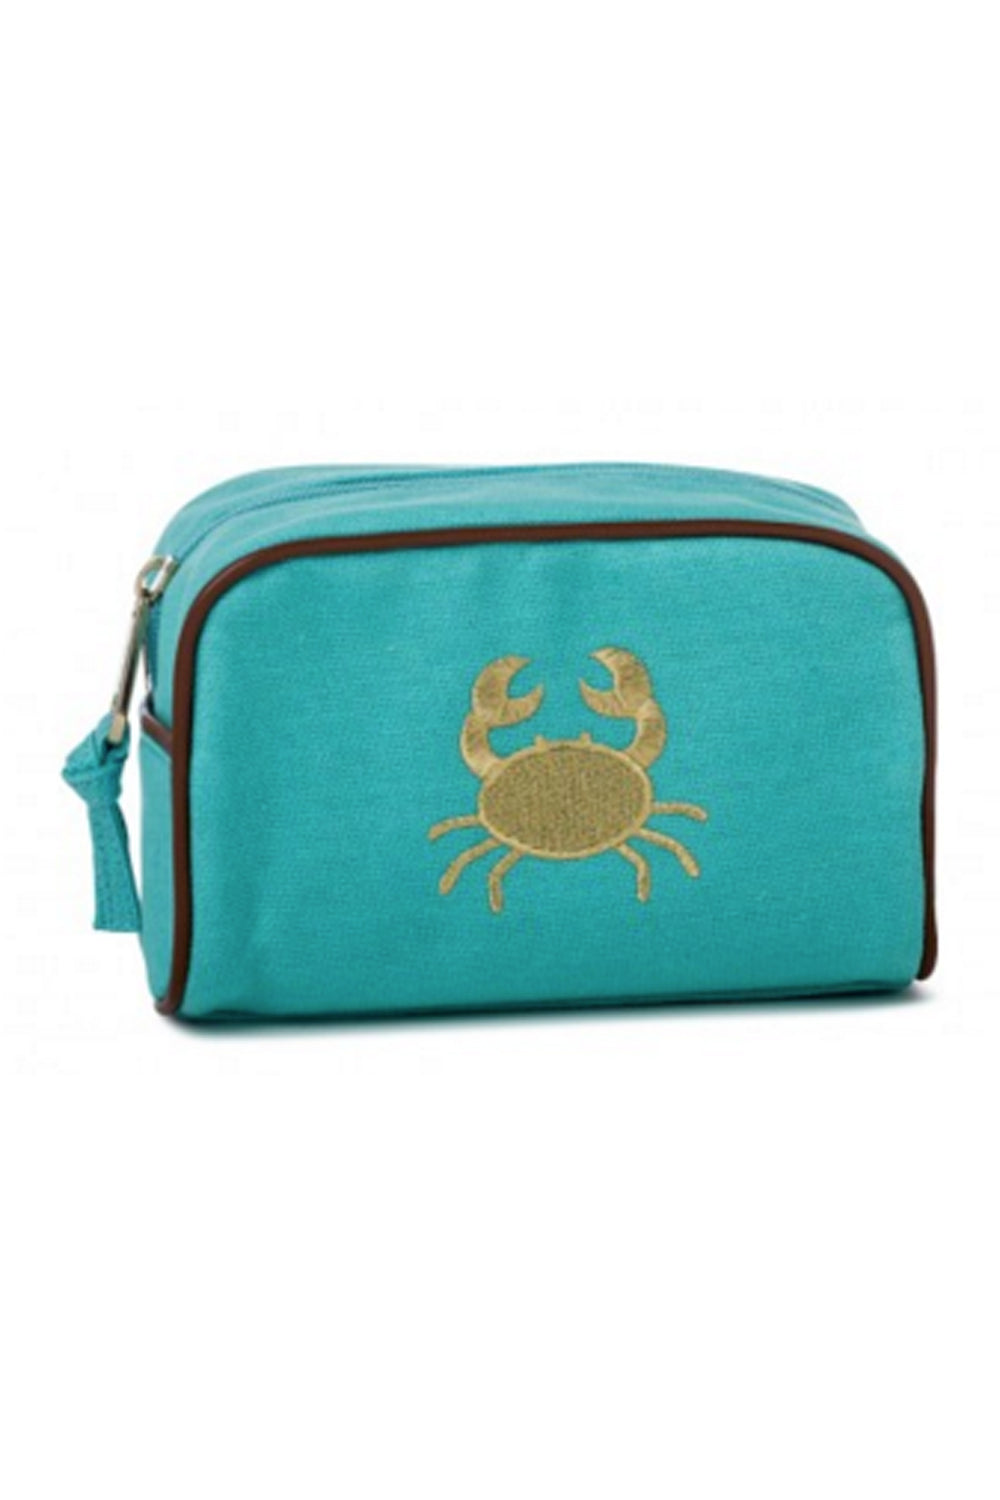 Fabric Travel Pouch - Teal Crab